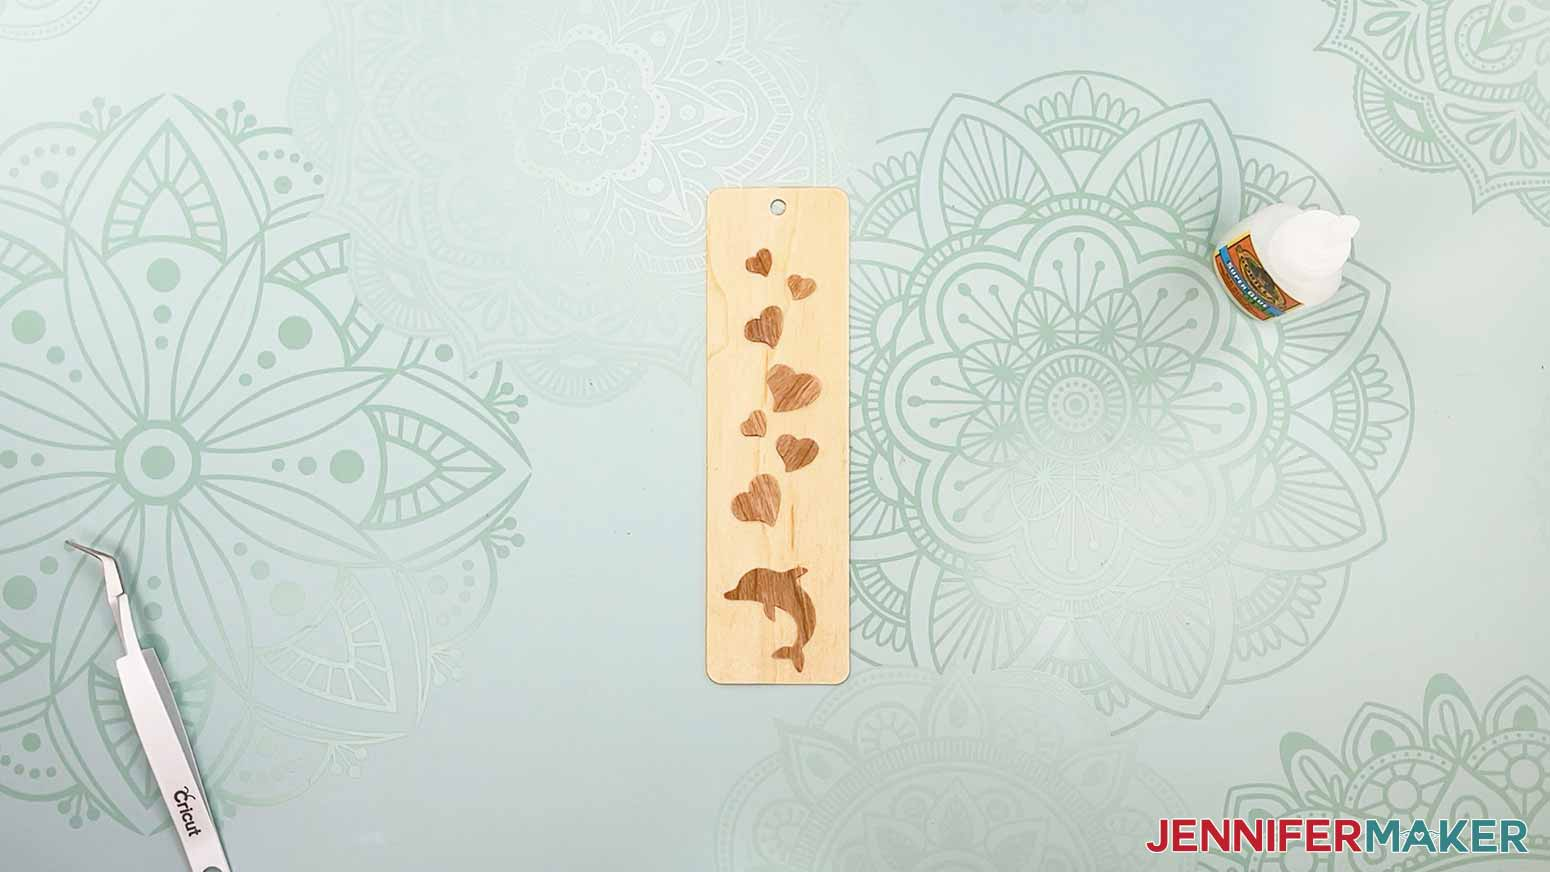 This is what my bookmark looks like using the dolphin and heart pieces from my wooden bookmarks project